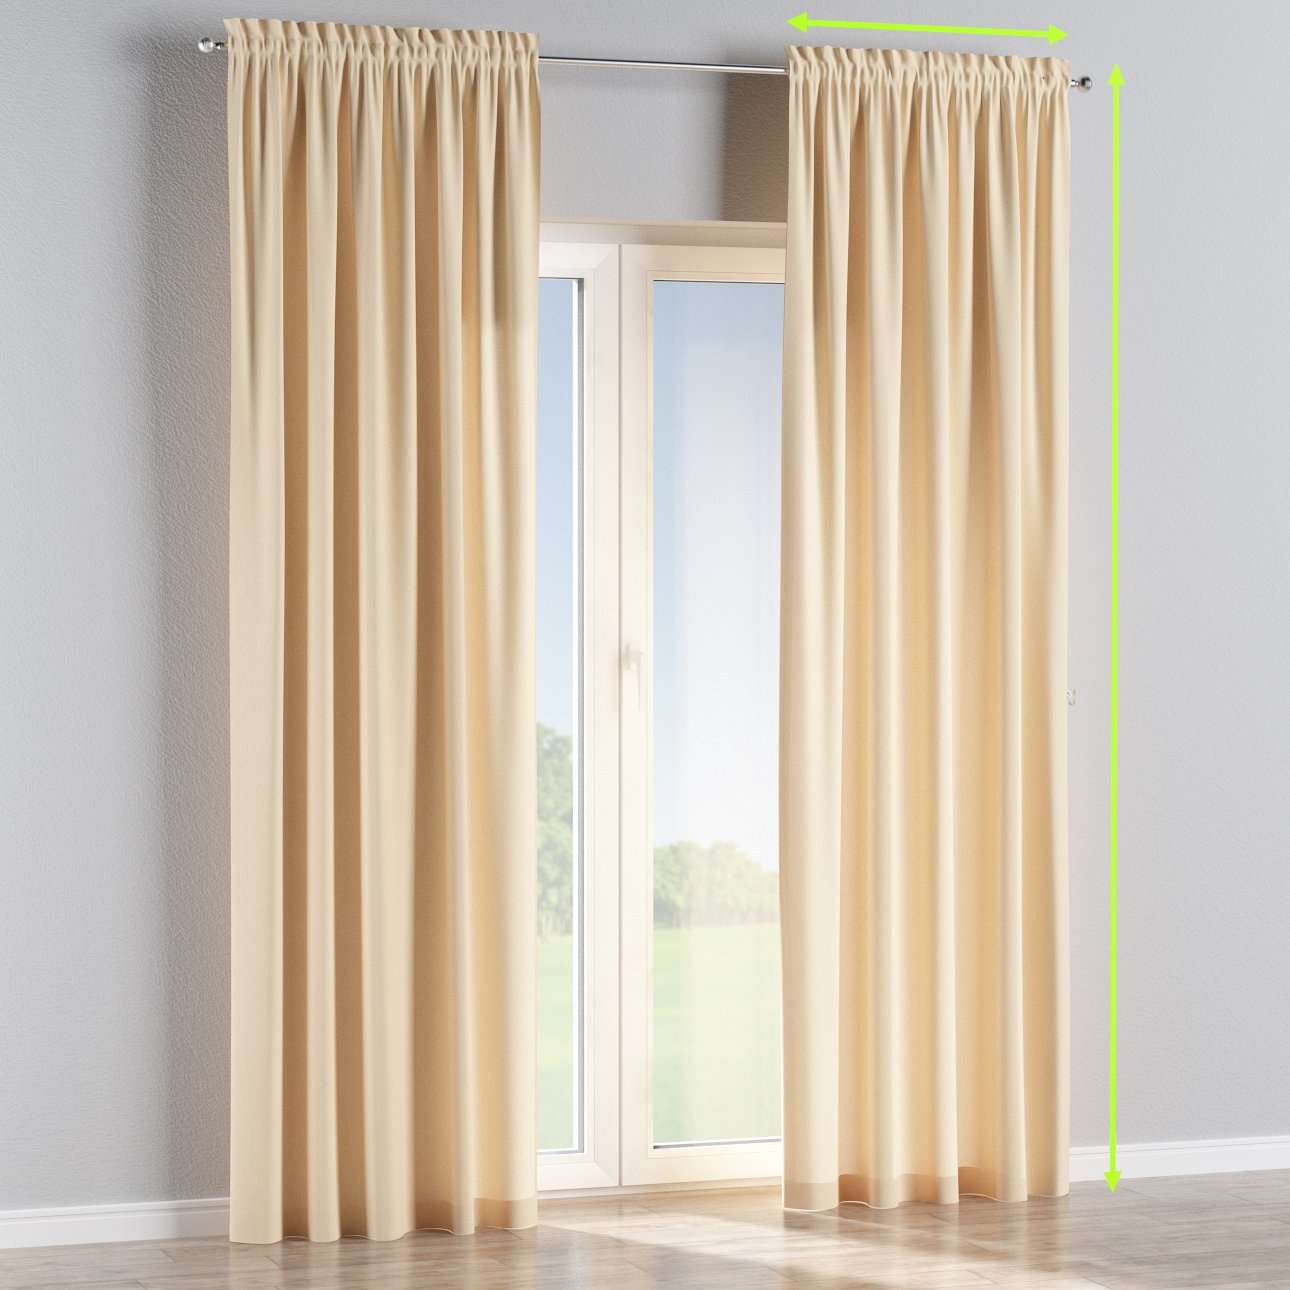 Slot and frill lined curtains in collection Chenille, fabric: 702-22